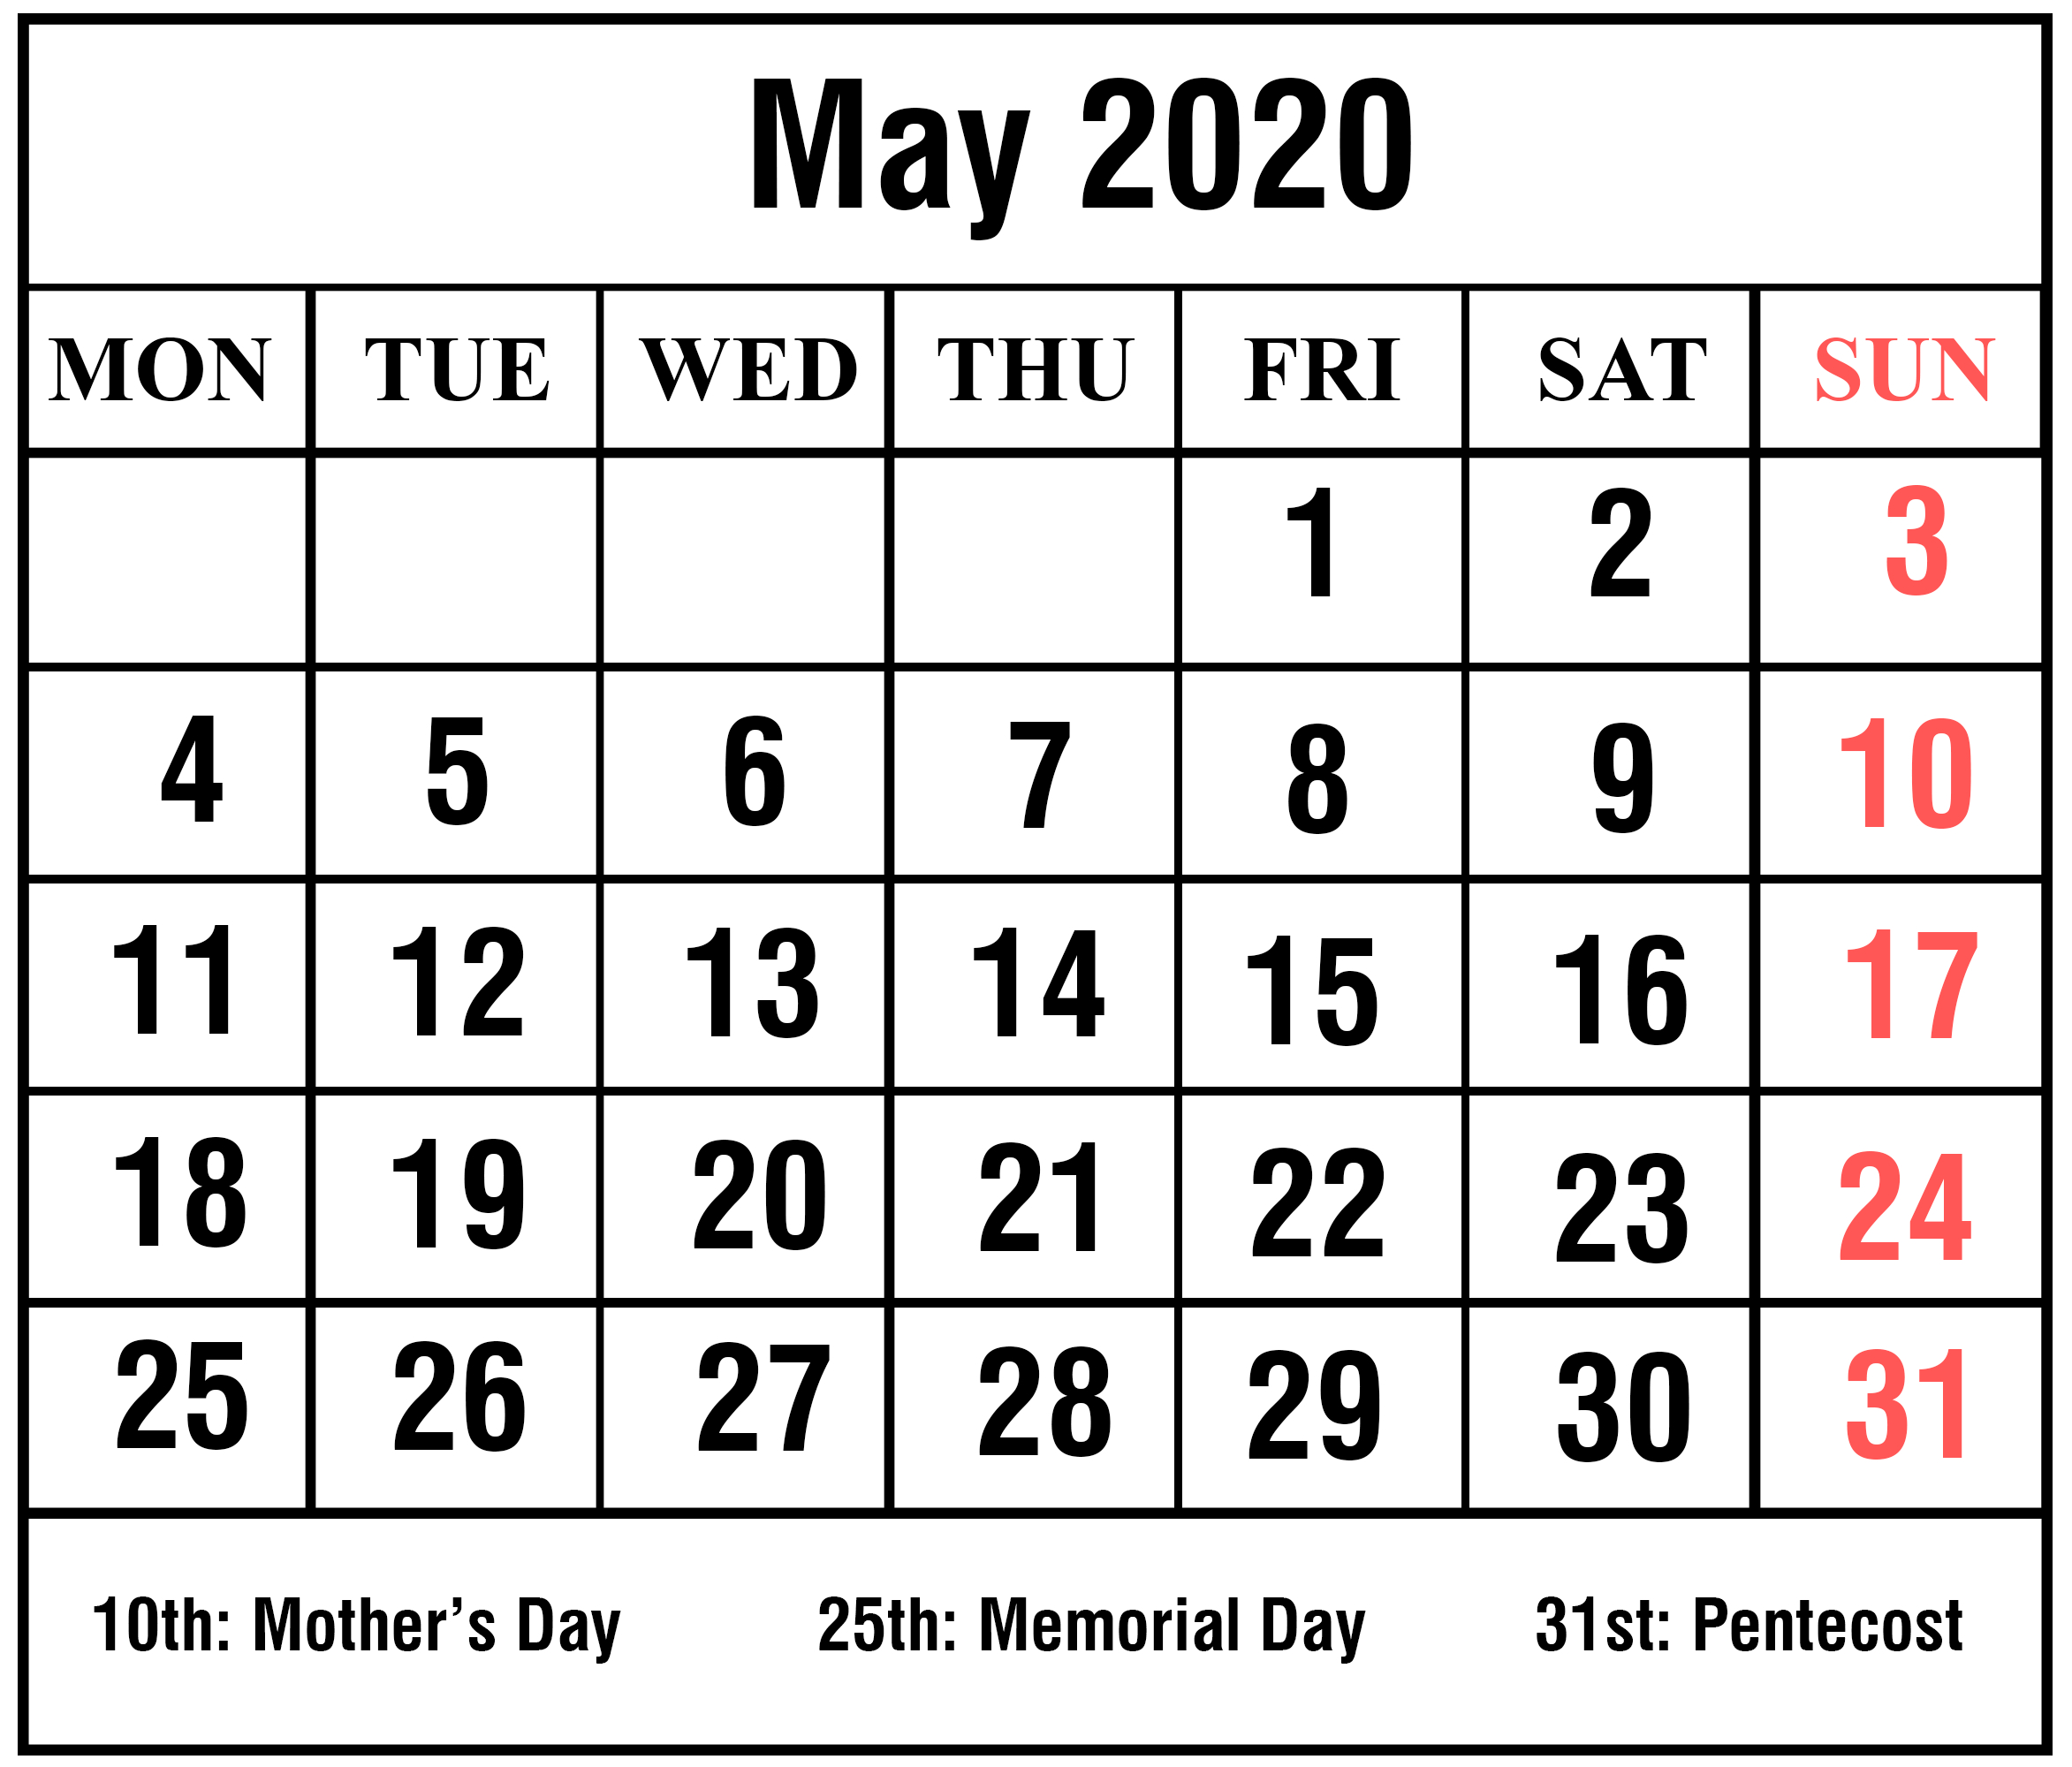 Free Blank May 2020 Calendar Printable [Pdf, Excel & Word